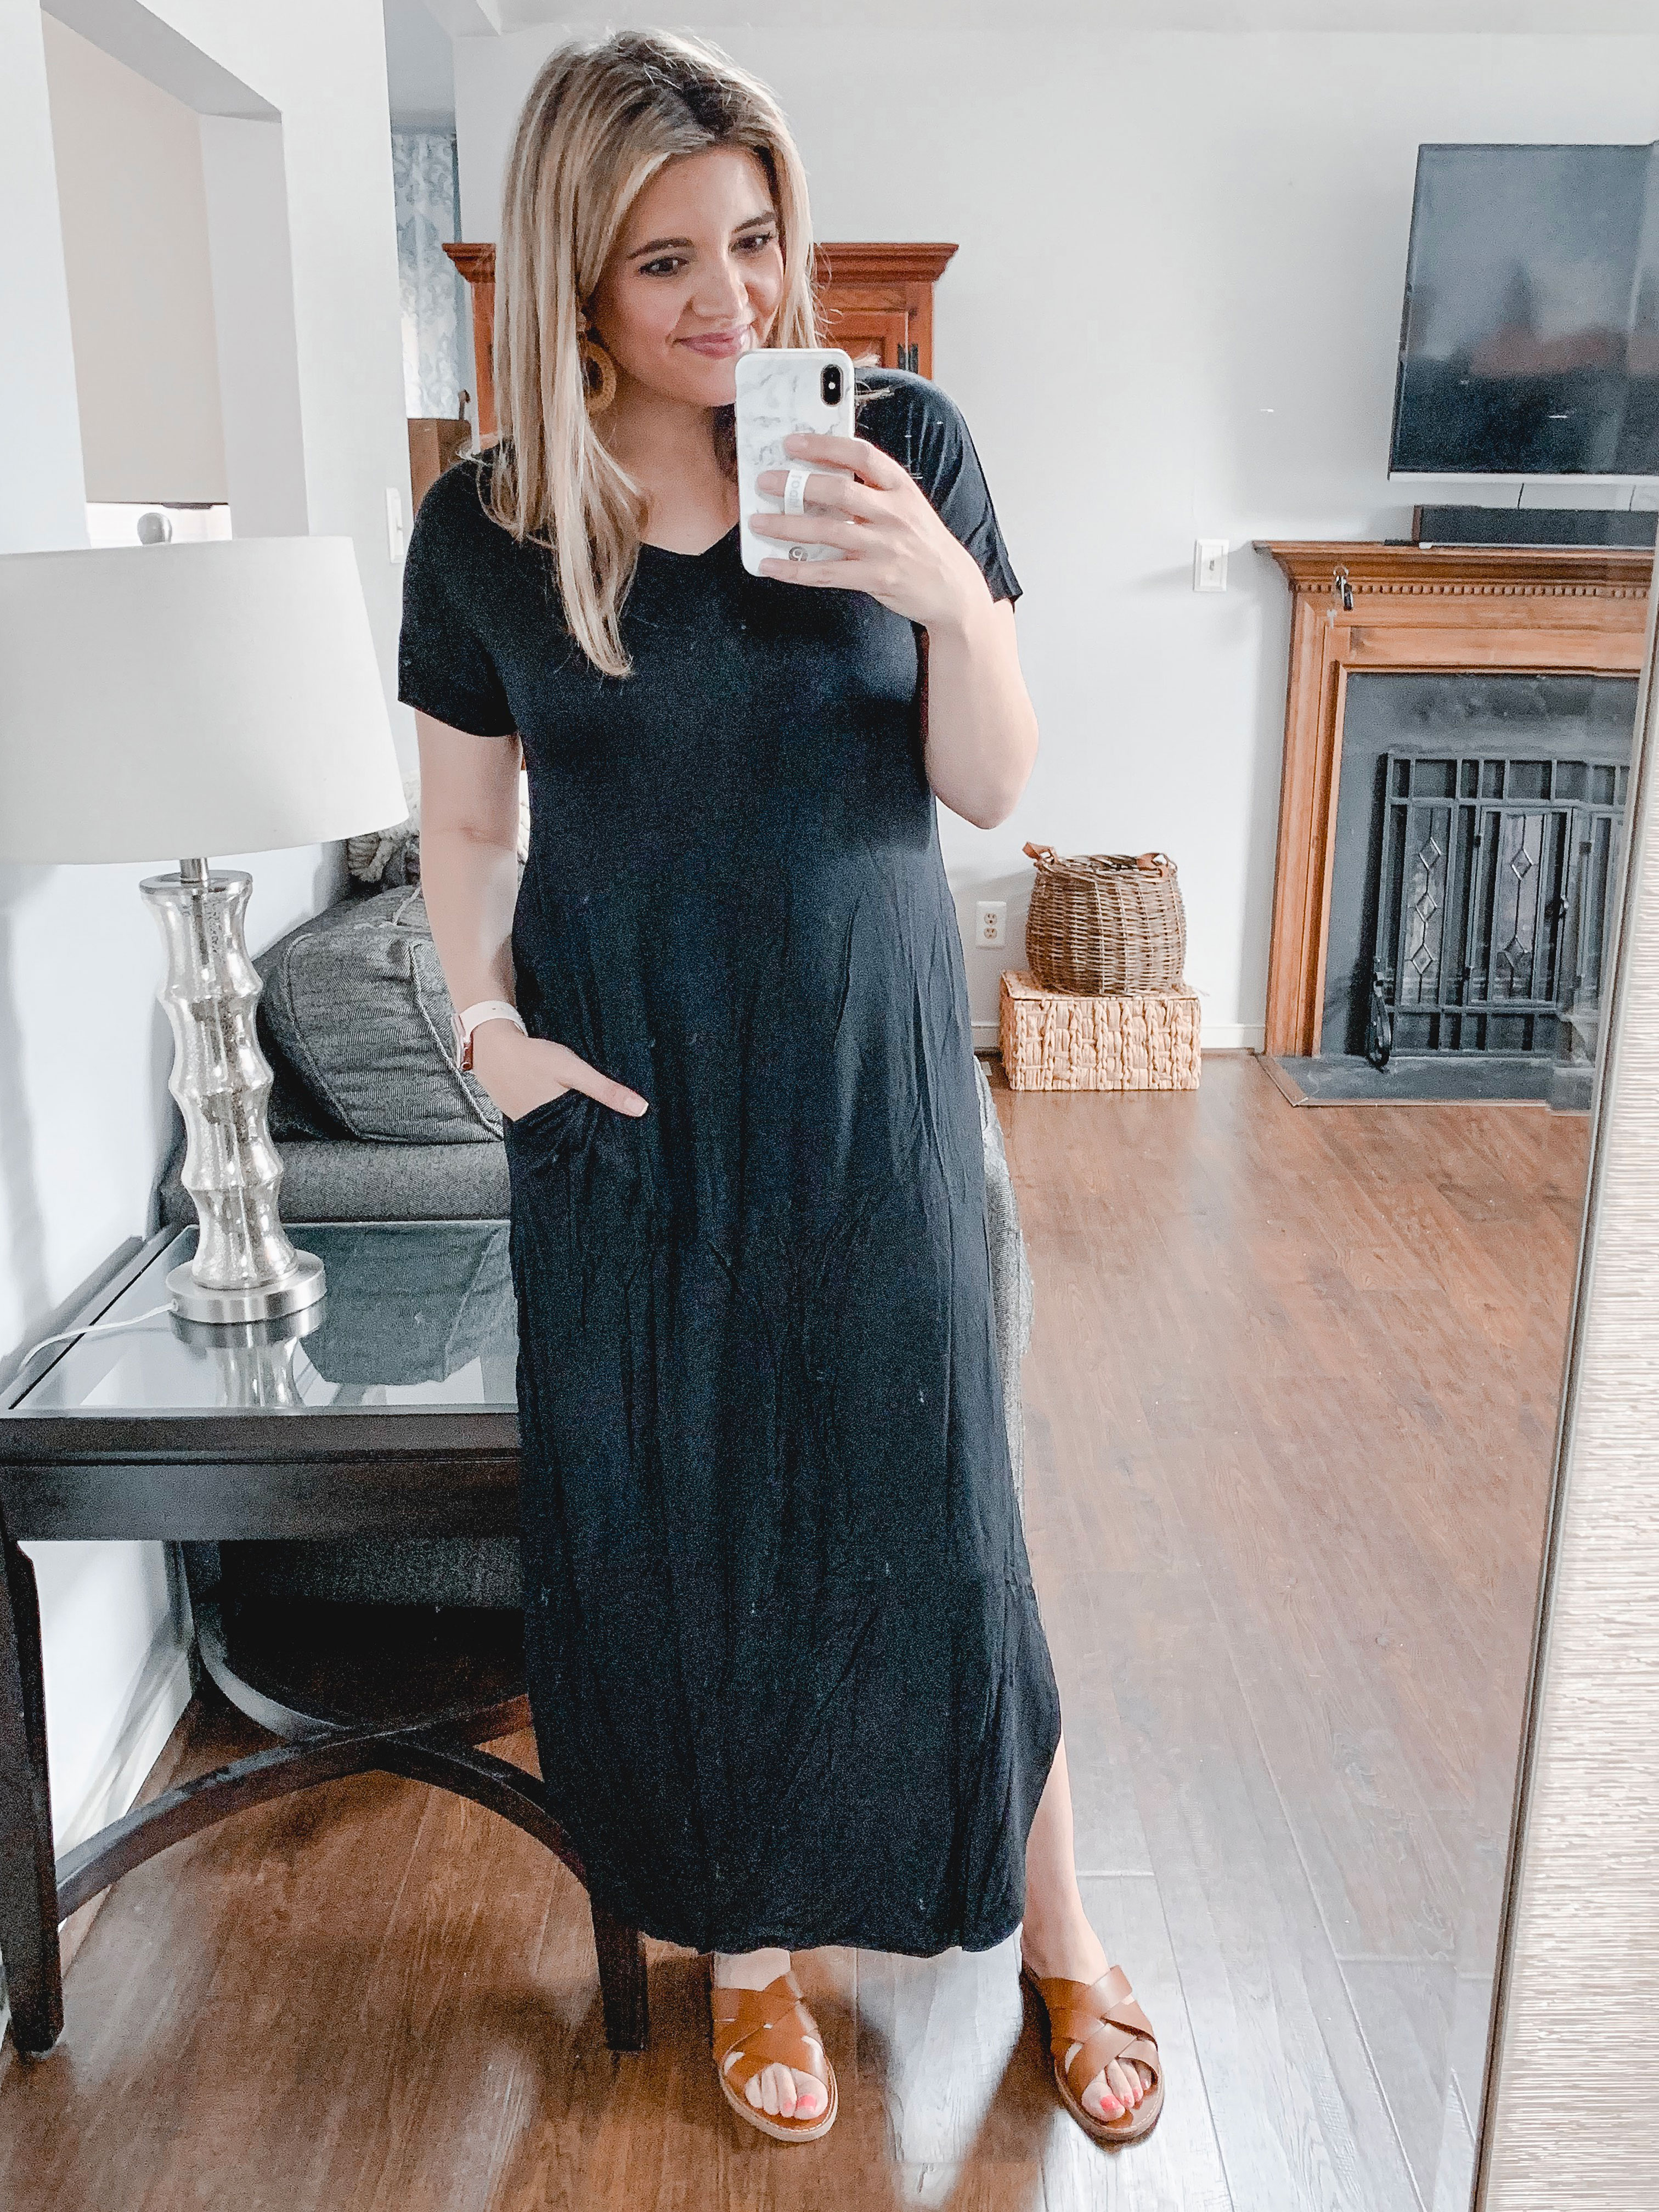 Affordable style blogger Lauren Dix tries on 10 black maxi dresses to find the very best amazon maxi dress under $35!